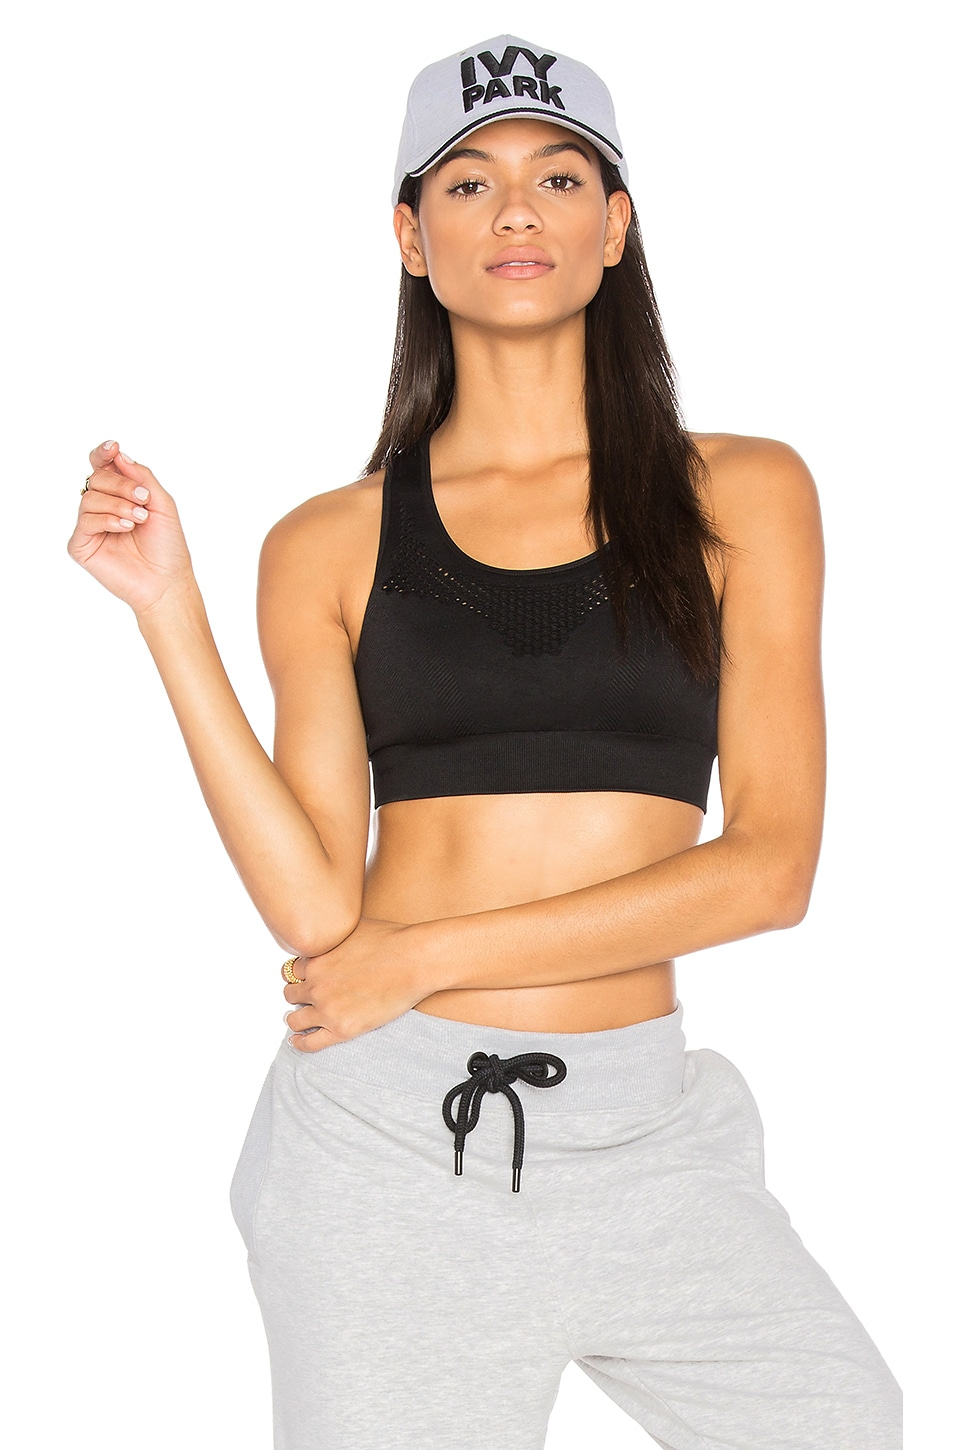 IVY PARK Mesh Sports Bra in Black